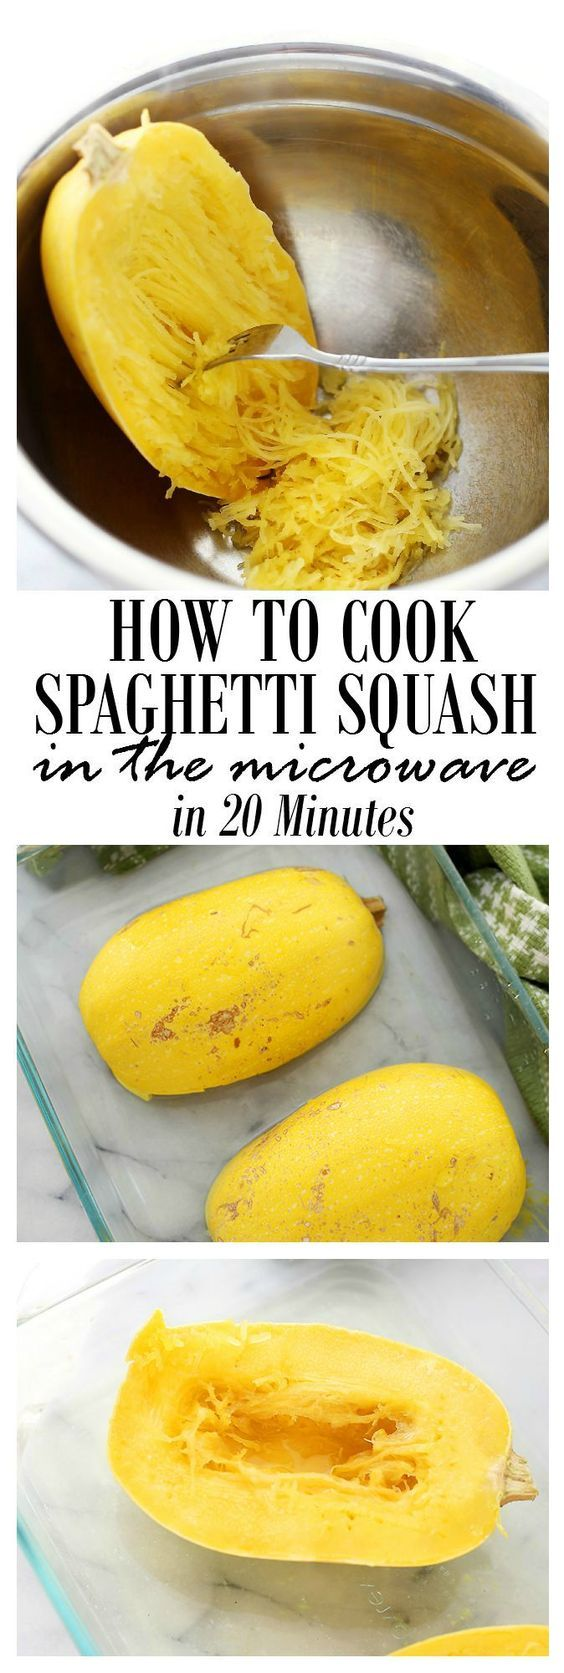 How to Cook Spaghetti Squash in the Microwave   www.diethood.com   A faster, mess-free method to cook spaghetti squash!